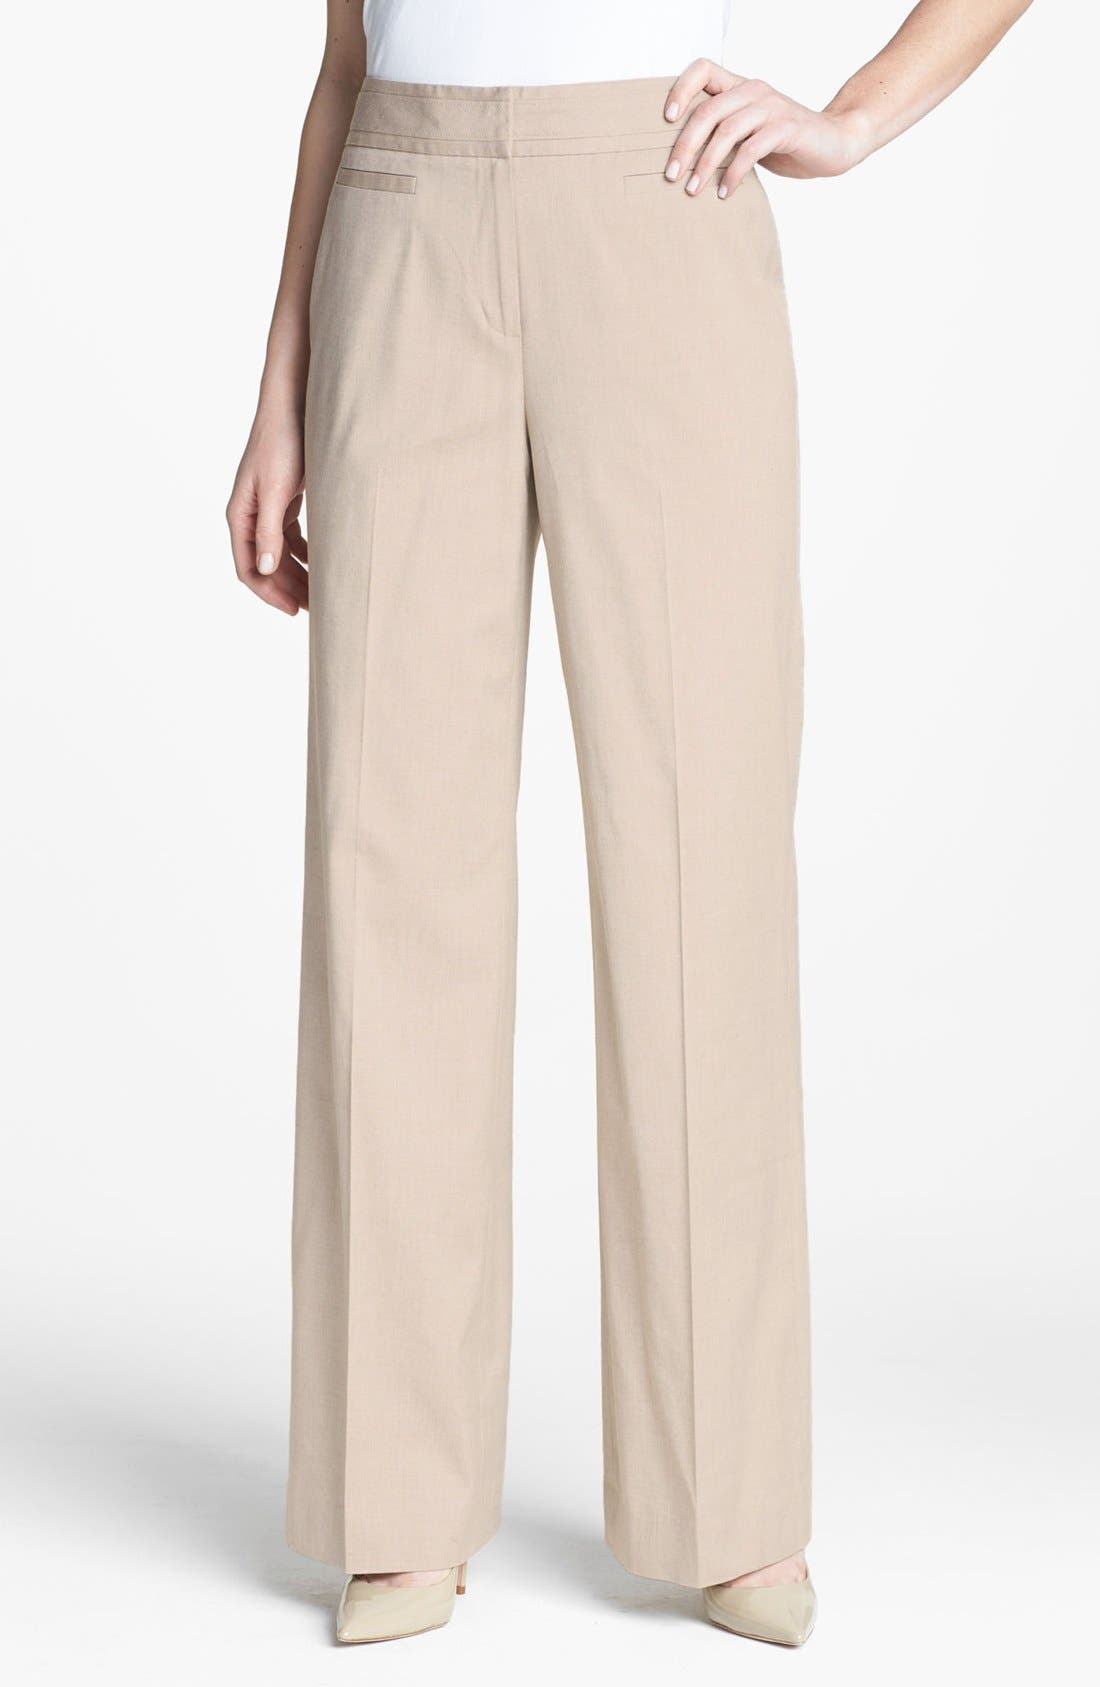 Alternate Image 1 Selected - Classiques Entier® 'Chic Twill' High Waist Pants